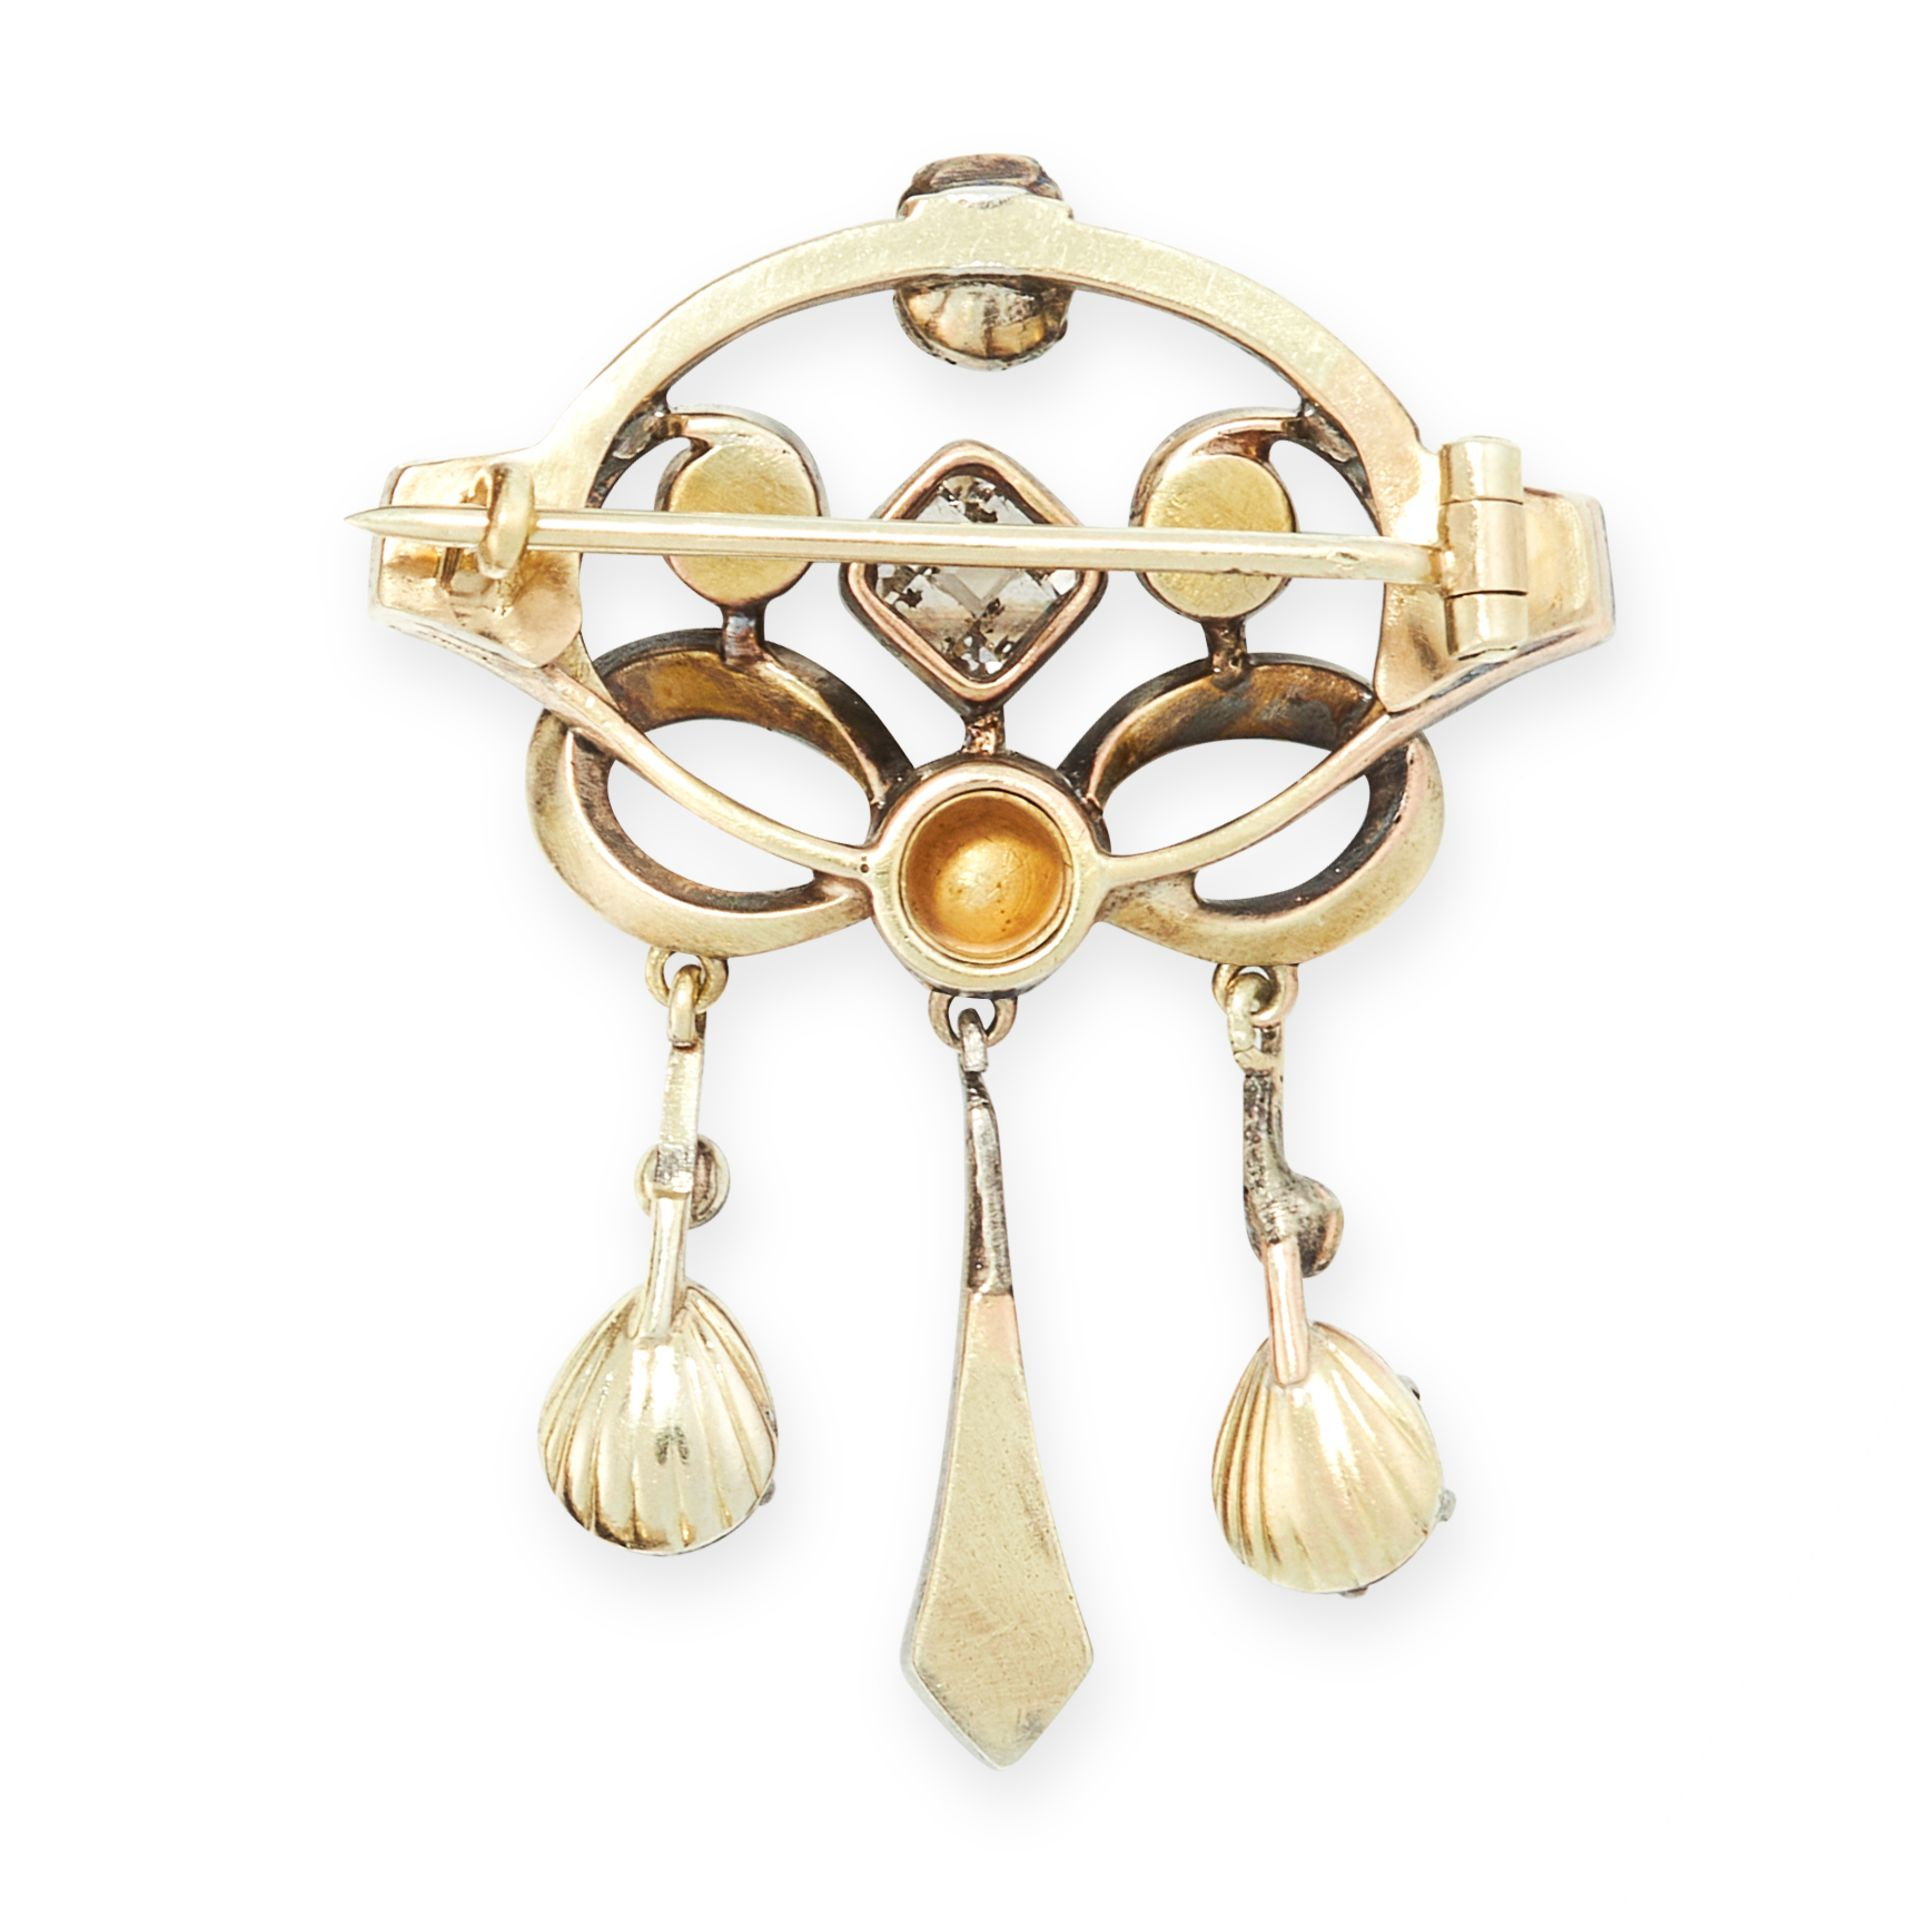 AN ANTIQUE DIAMOND BROOCH, LATE 19TH CENTURY in yellow gold and silver the openwork body jewelled - Image 2 of 2